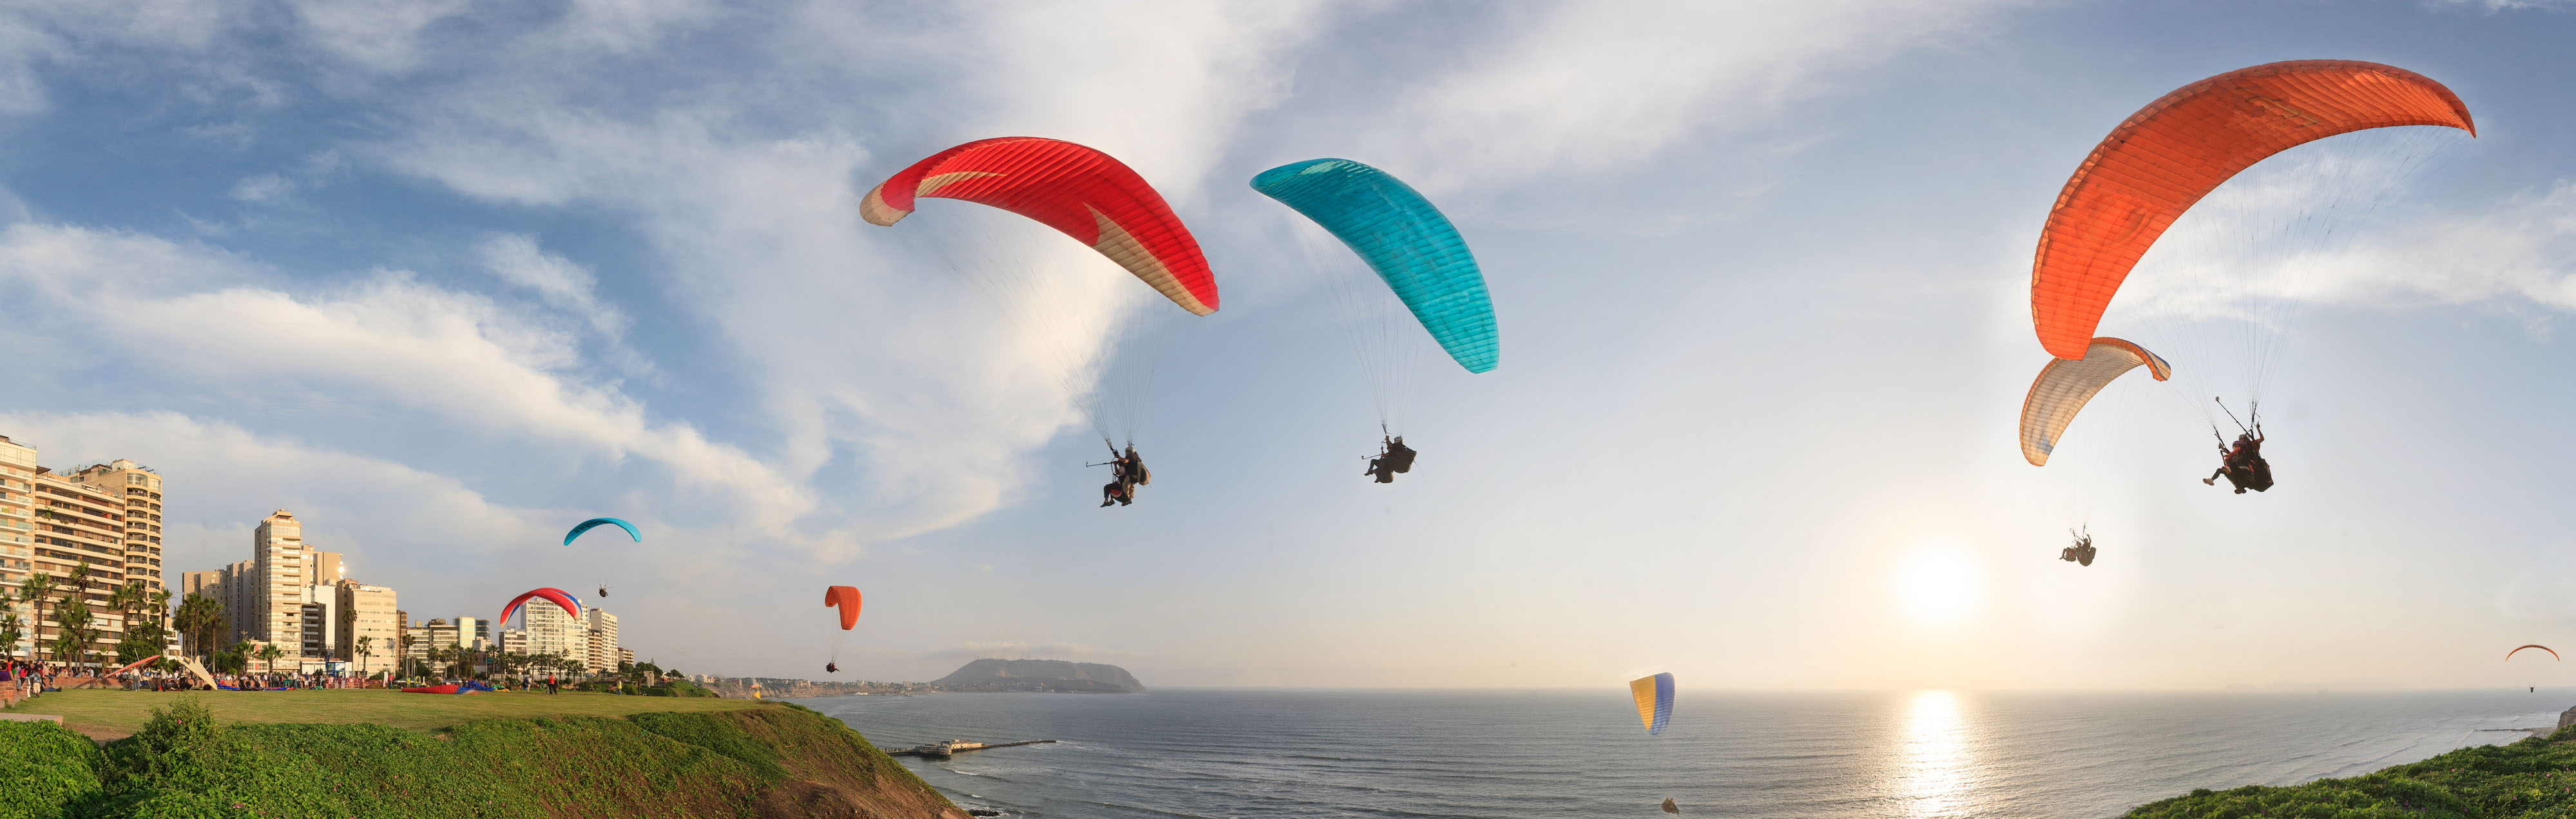 Hang gliders in Lima soar along the coast of Miraflores.